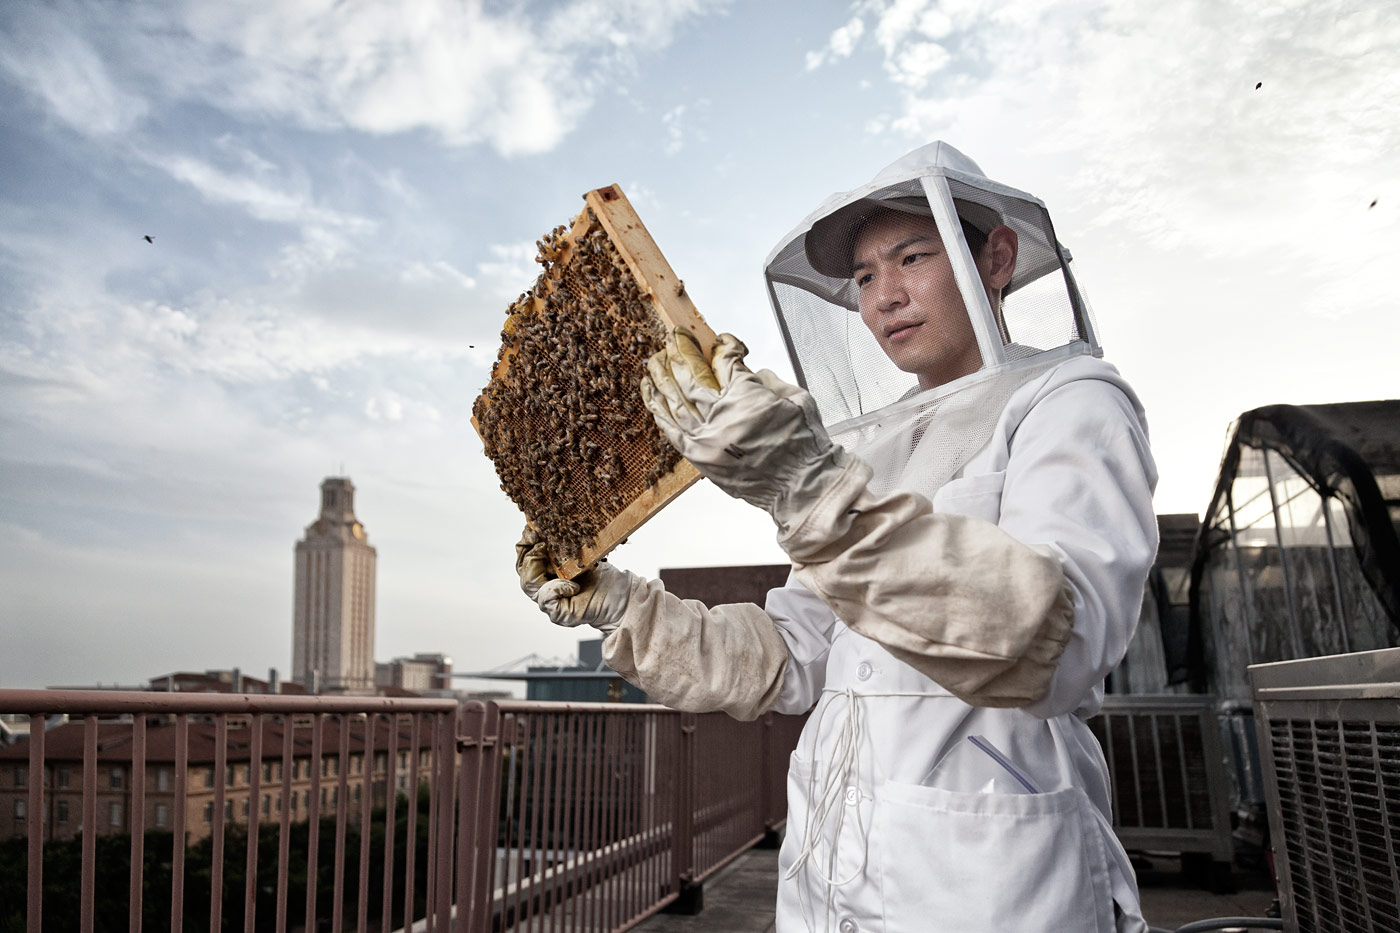 Editorial-ABP-beekeeper-university-of-texas.jpg